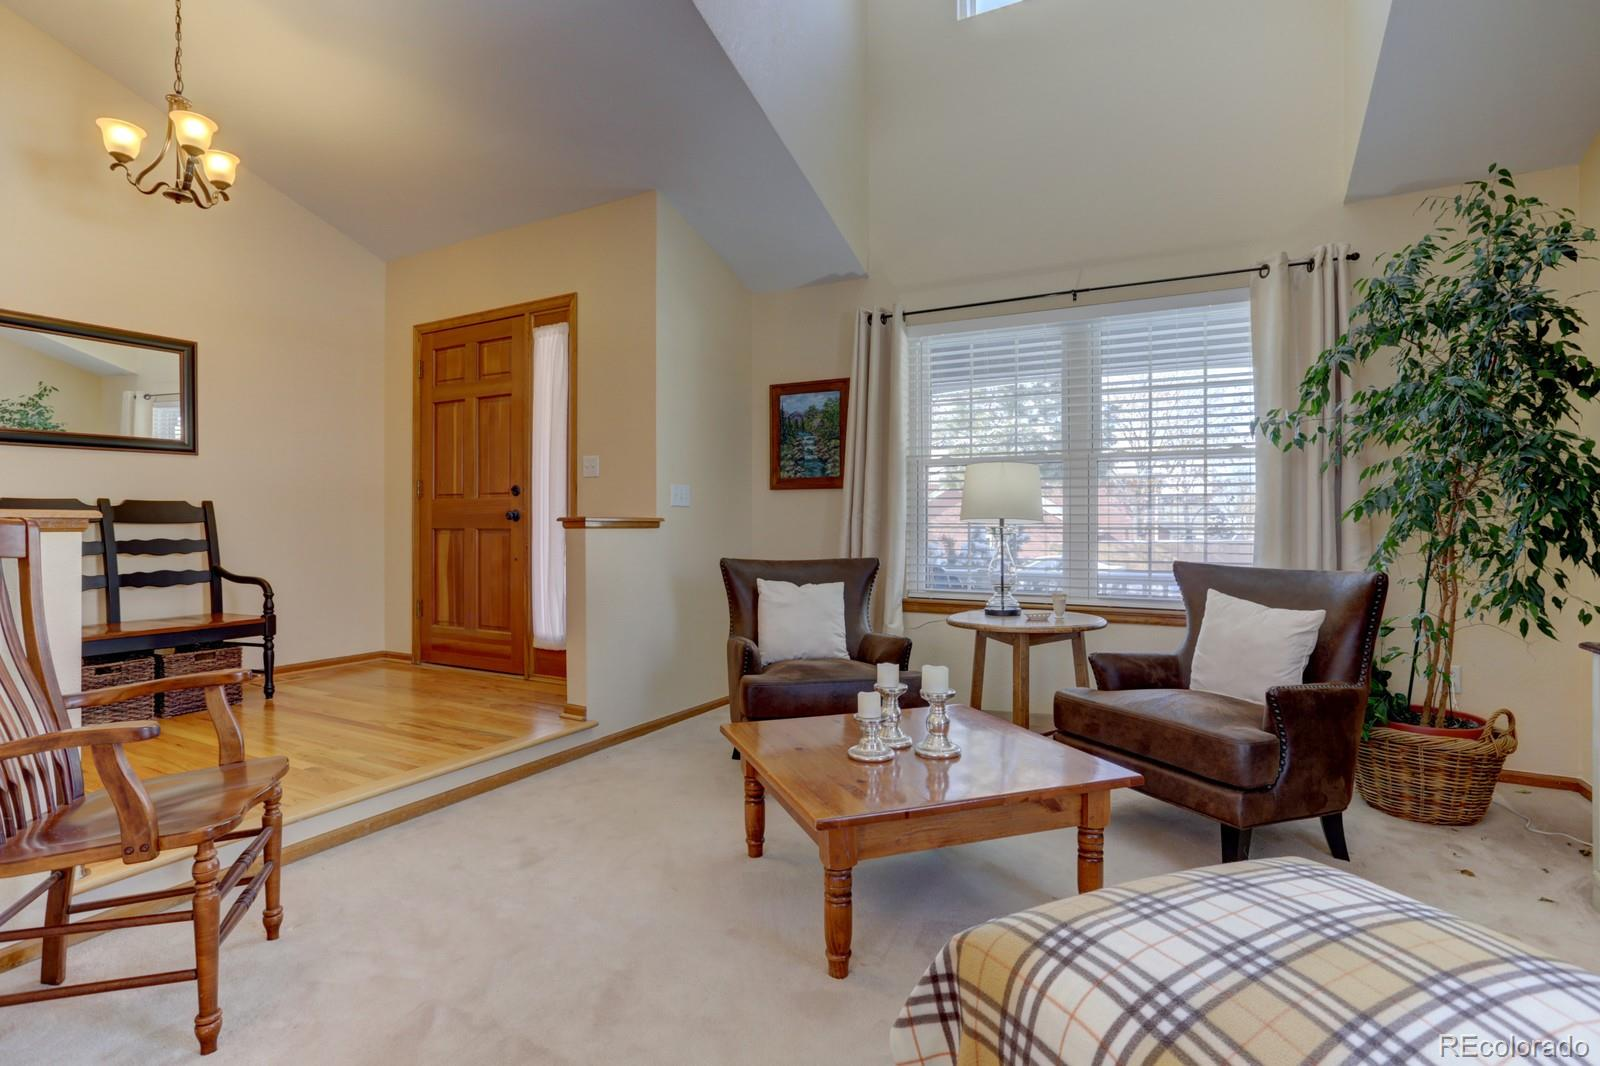 MLS# 5985159 - 6 - 9991 Spring Hill Place, Highlands Ranch, CO 80129